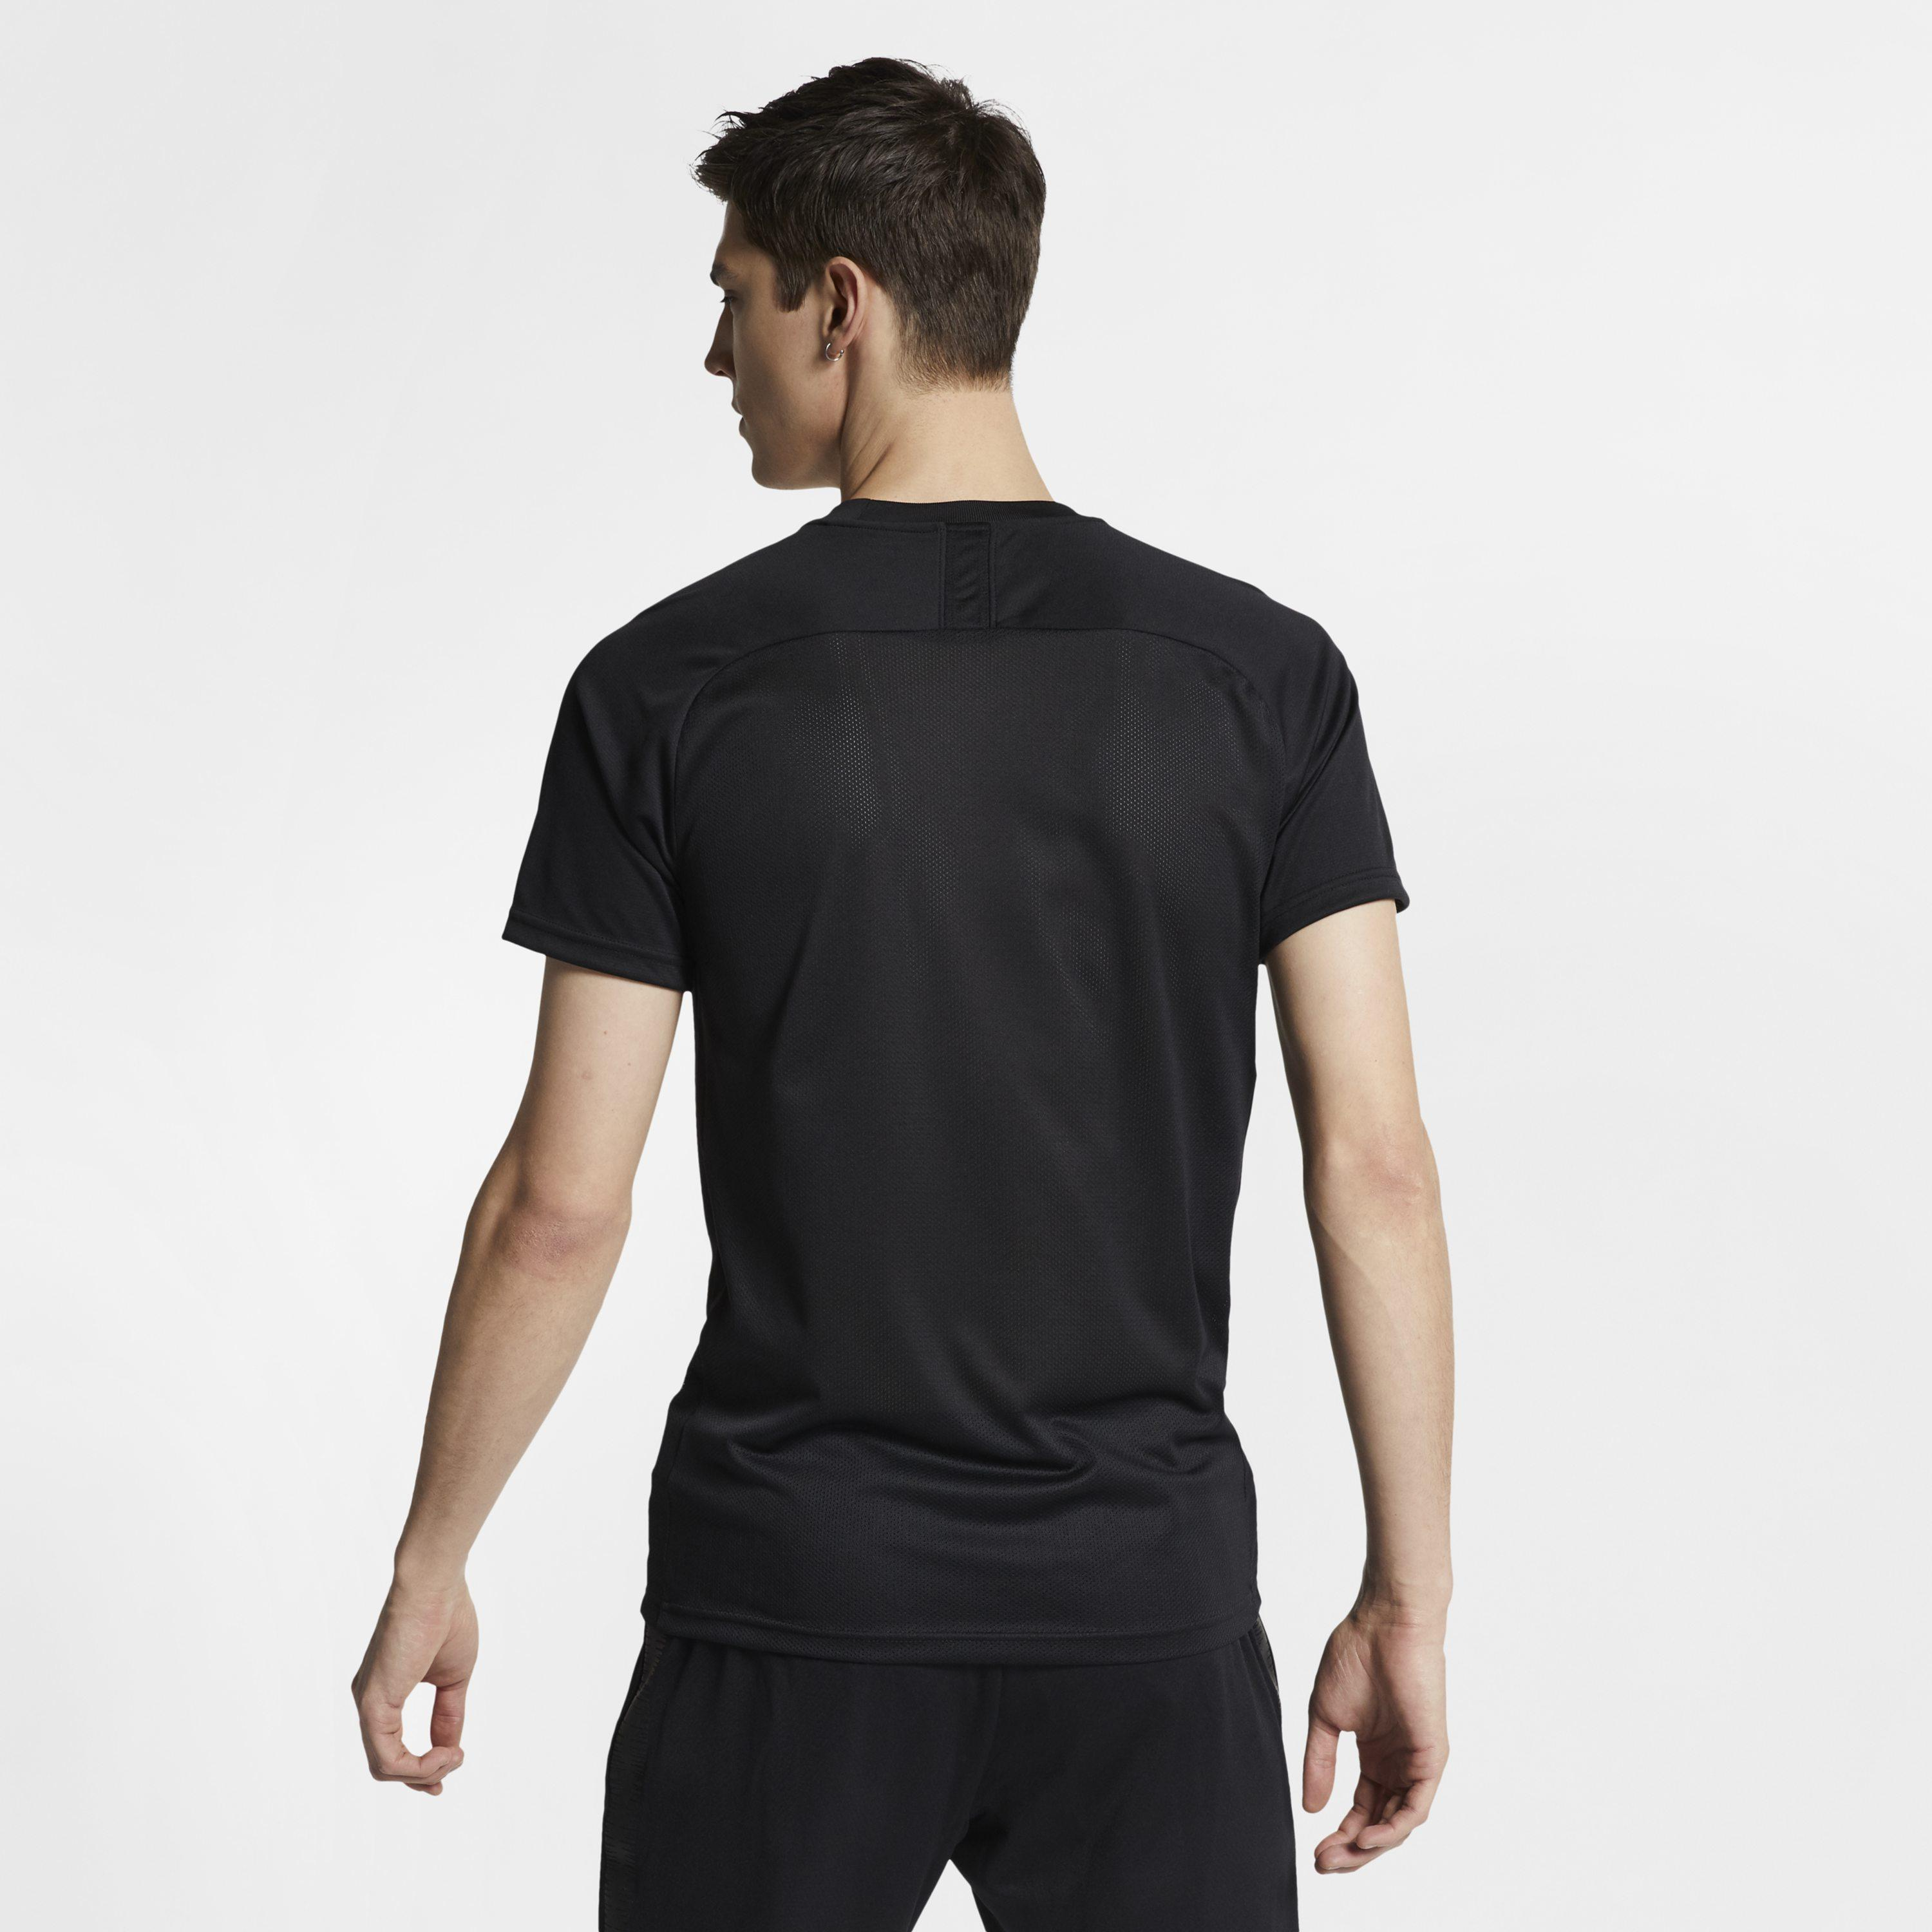 41781ac0 Source · Nike Dri fit Academy Football Short sleeve Top in Black for Men  Lyst